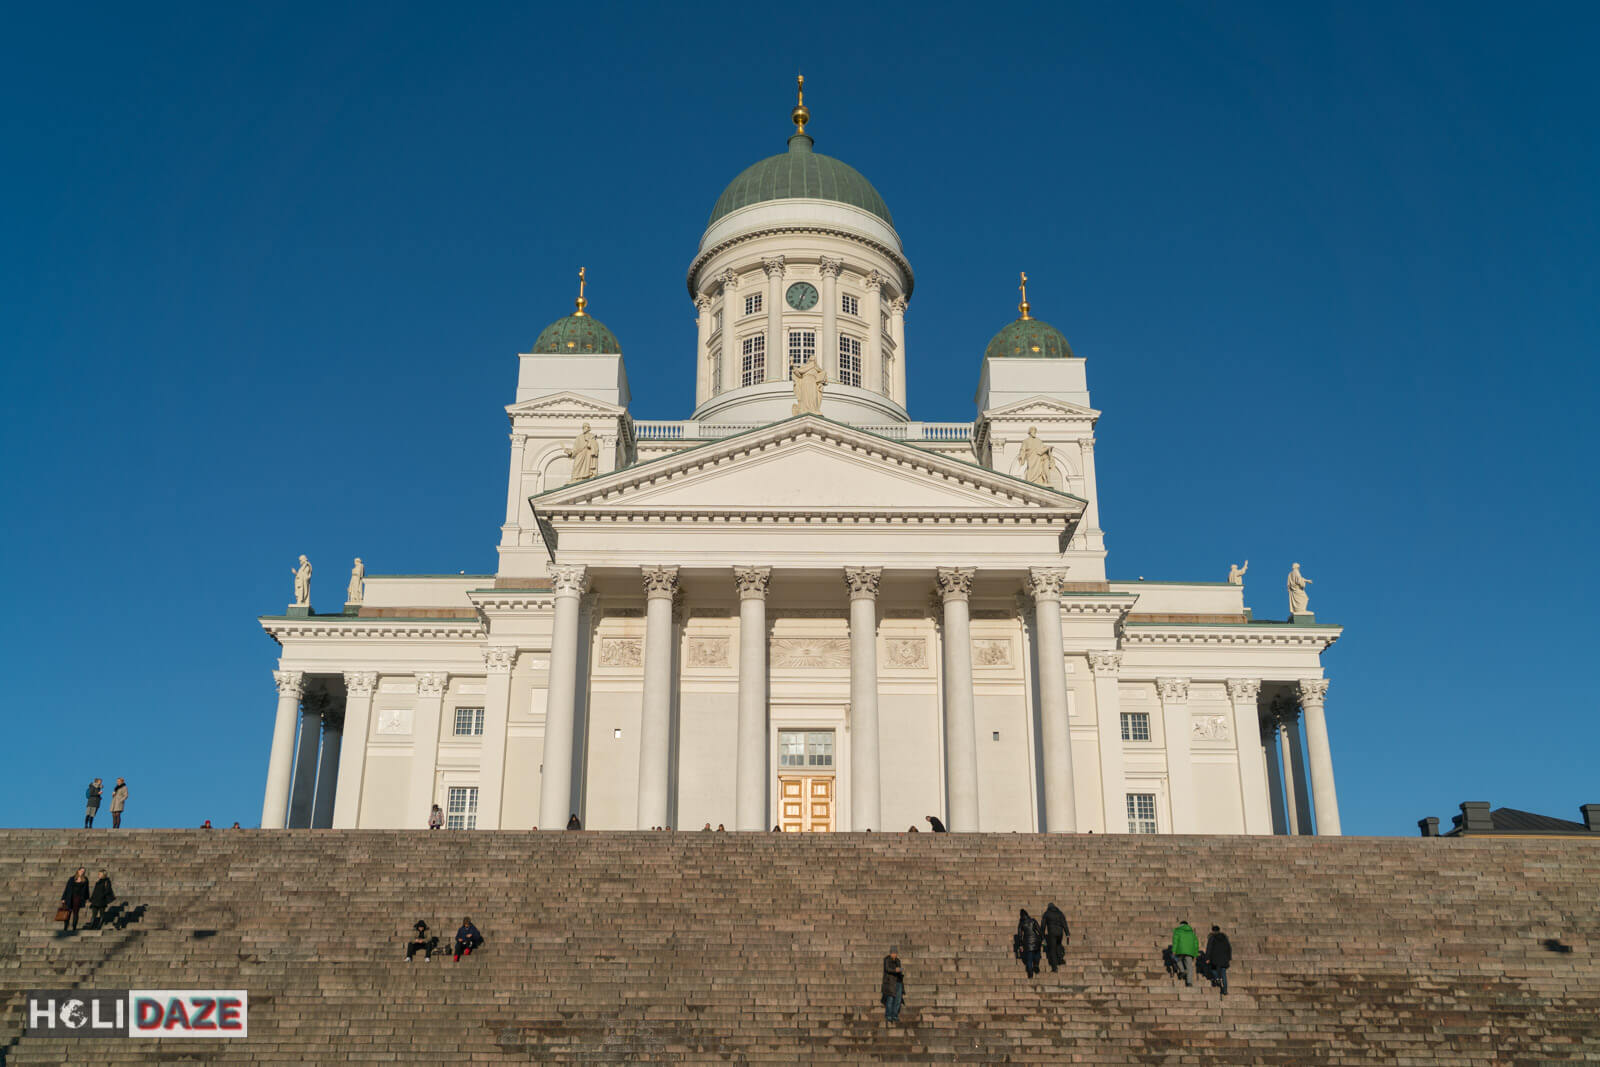 Helsinki Cathedral in Finland on a bright sunny day with perfectly blue sky